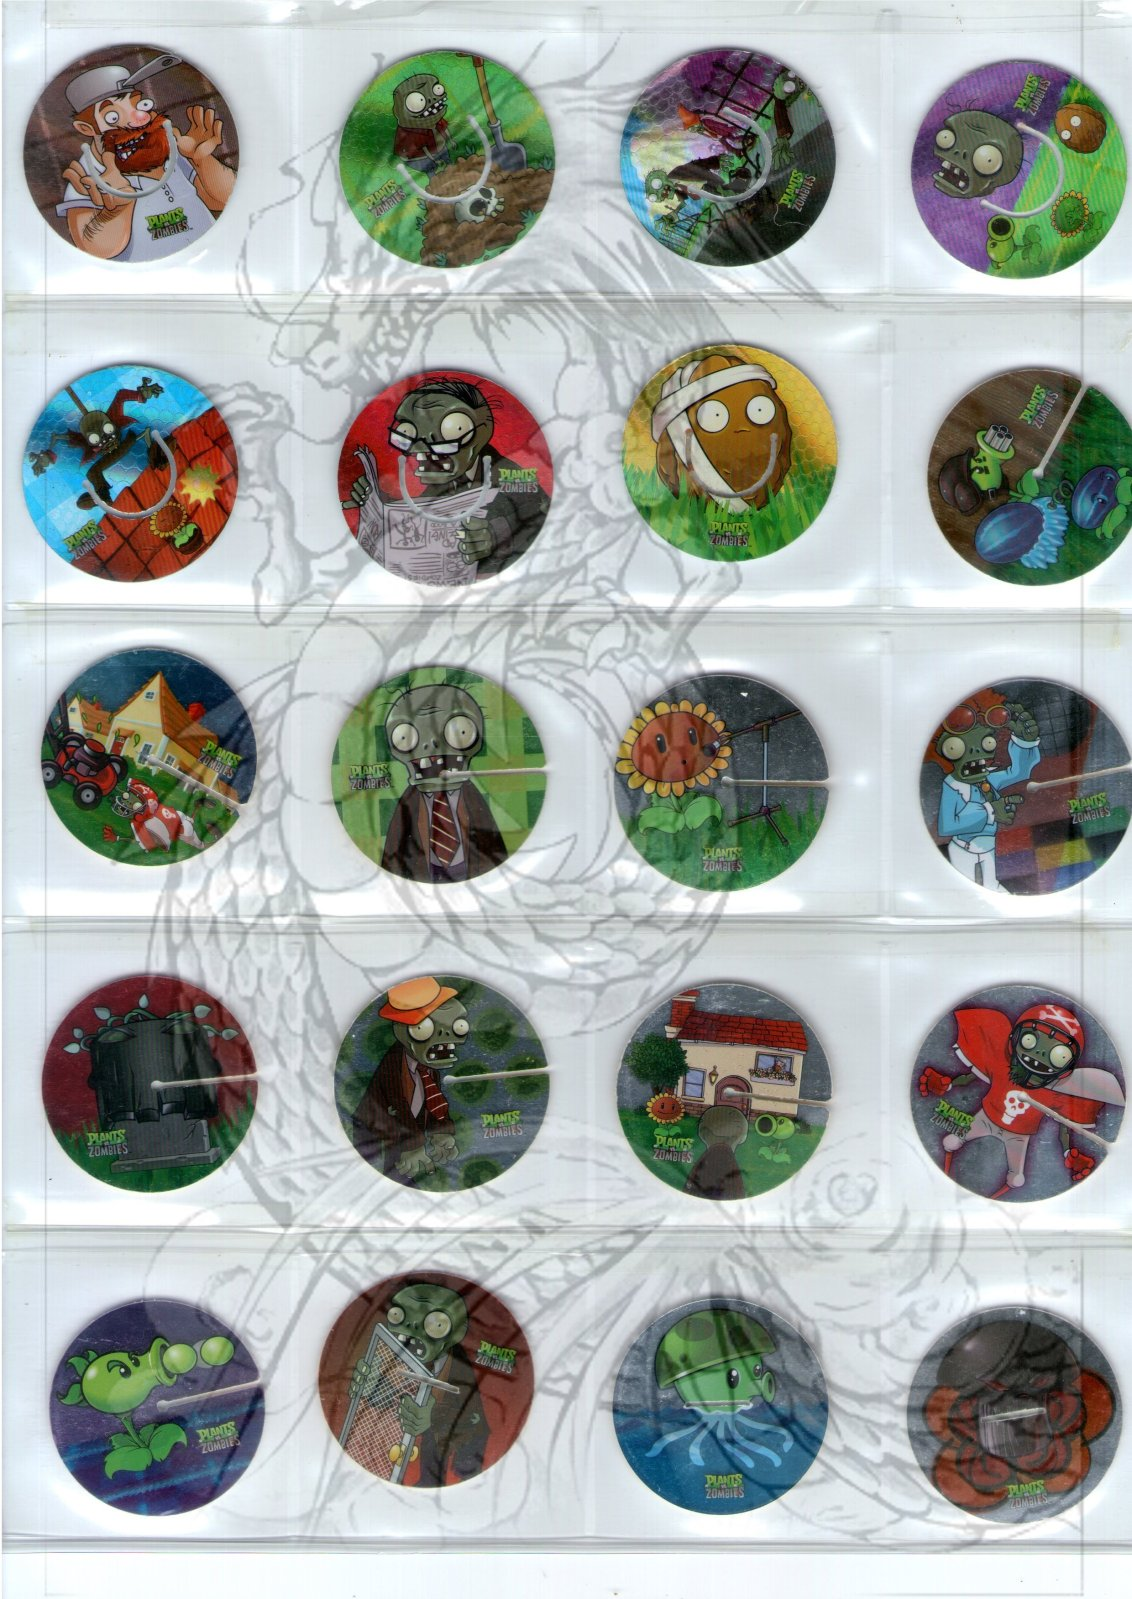 Tazos Plantas Vs Zombies de SABRITAS 25hmnwn